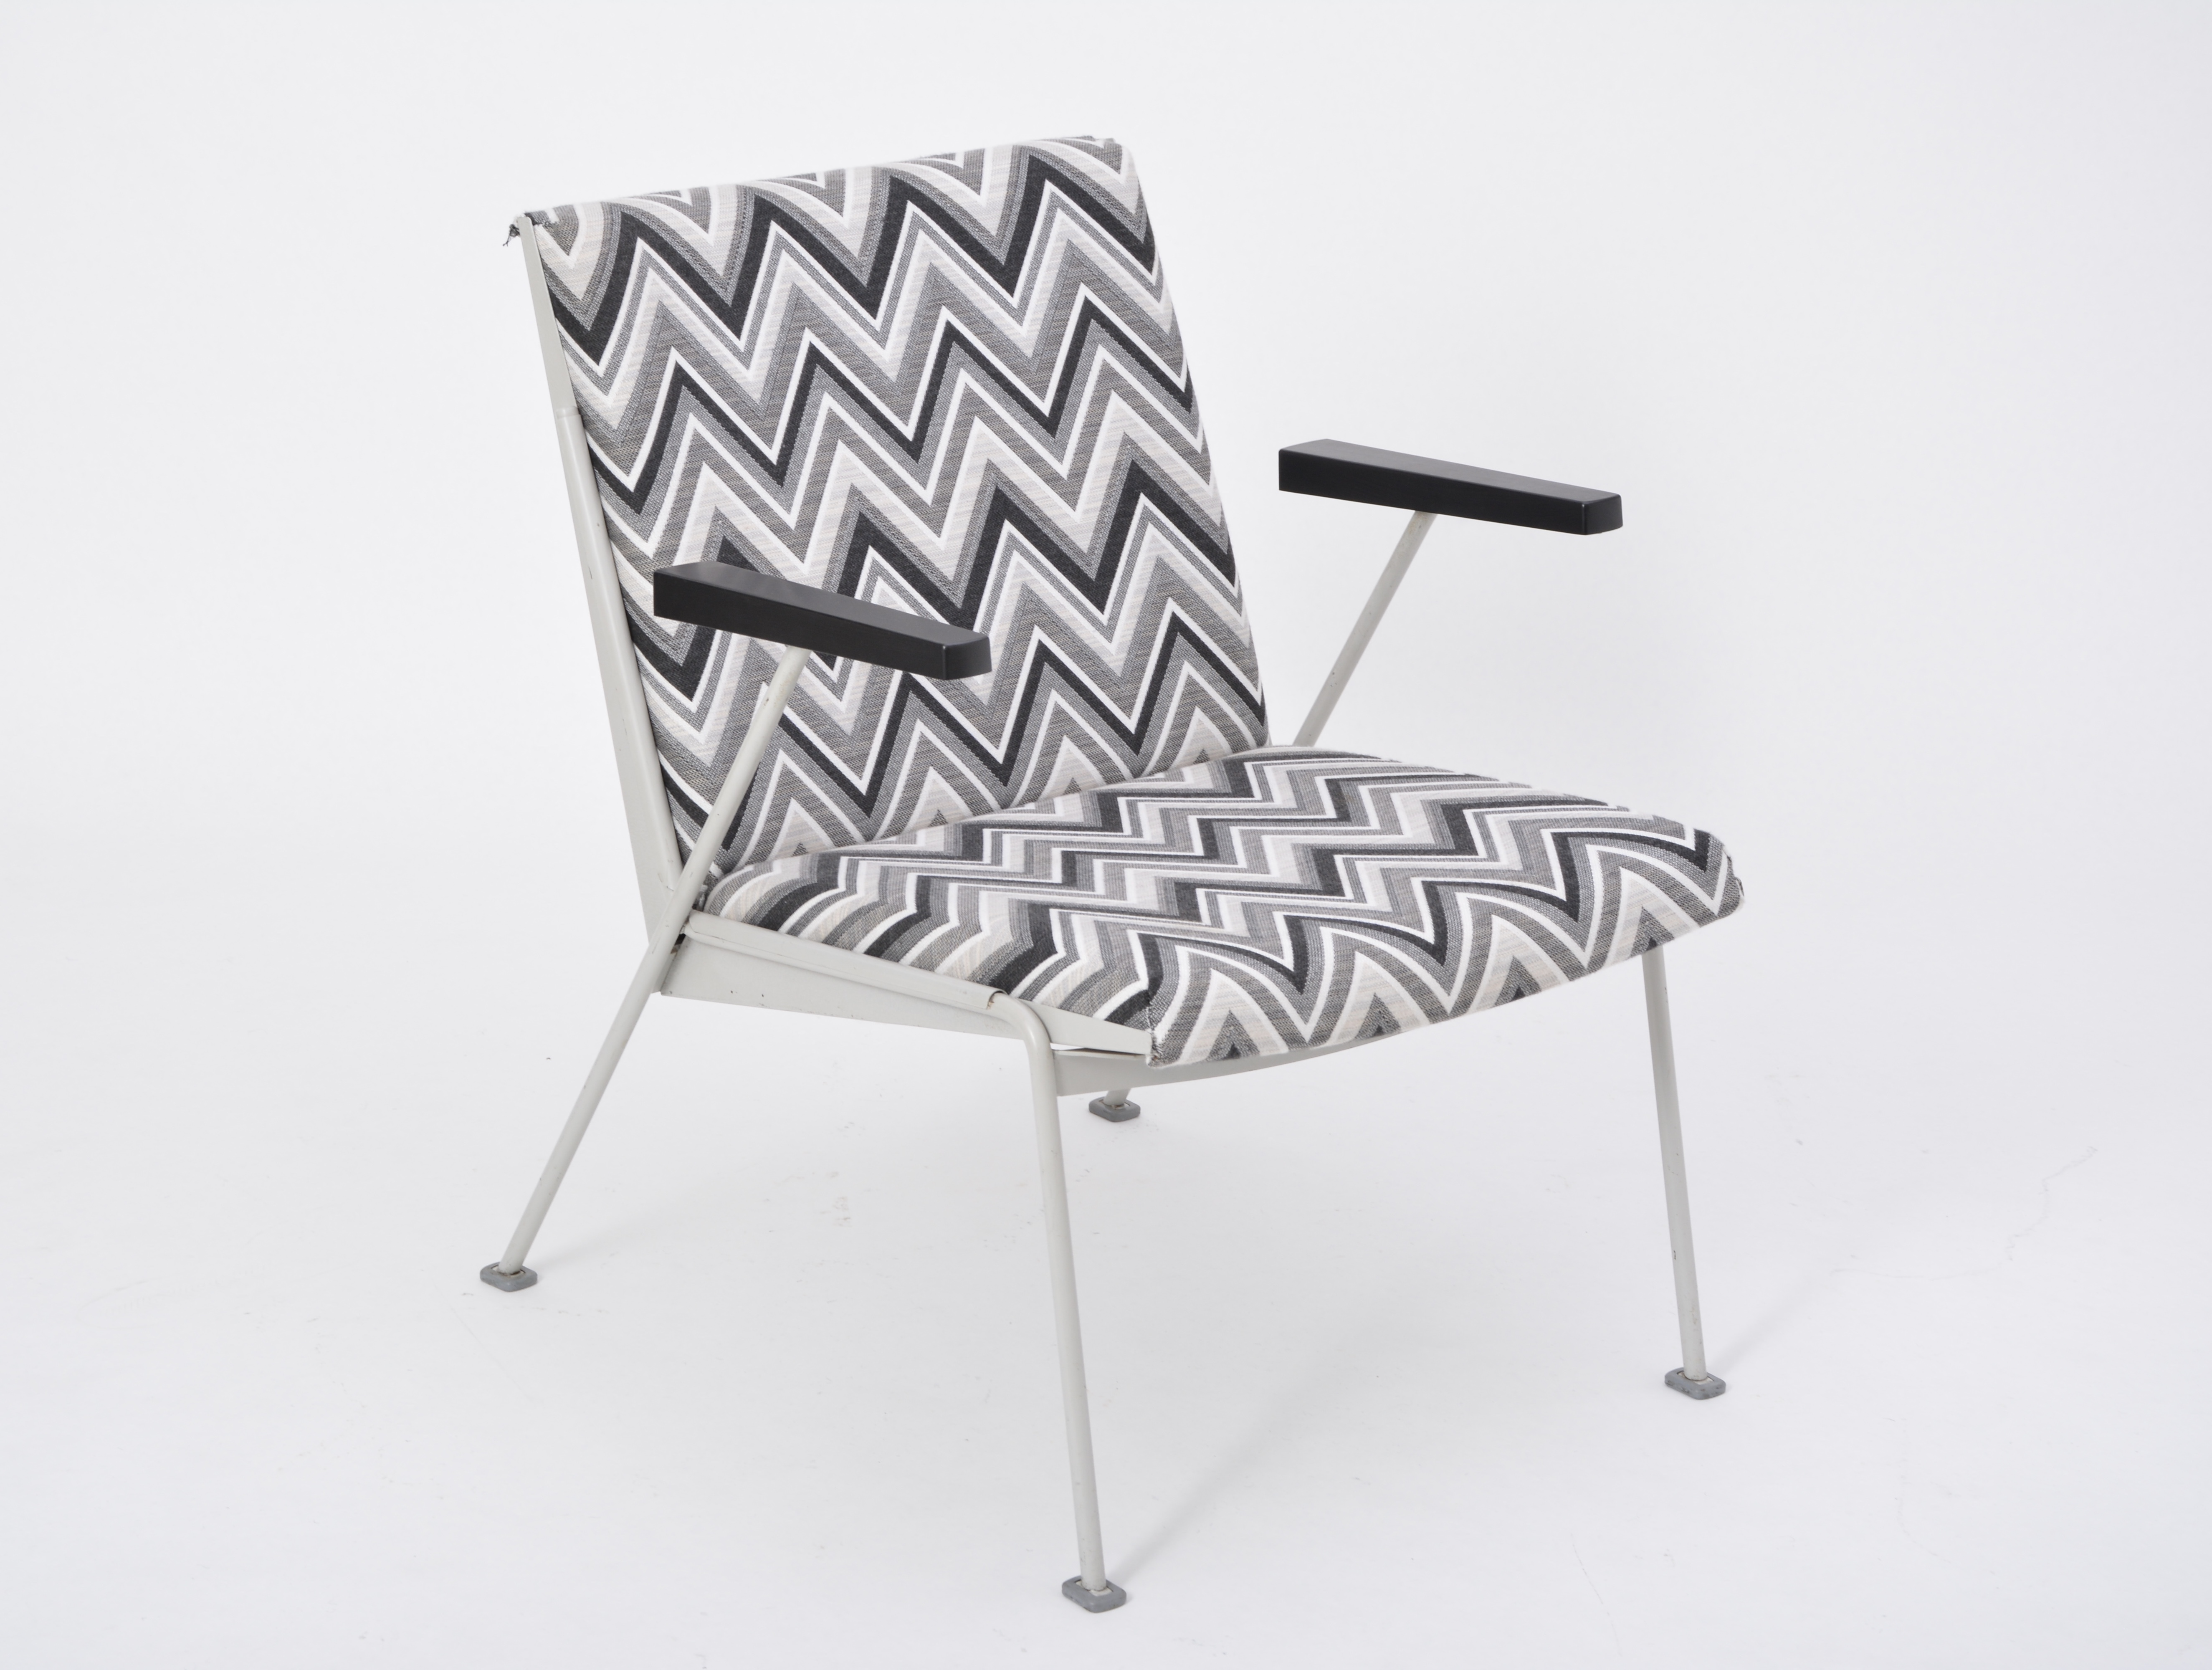 Phenomenal Mid Century Oase Chair In Black And White Zig Zag Pattern By Wim Rietveld For Ahrend De Cirkel Short Links Chair Design For Home Short Linksinfo